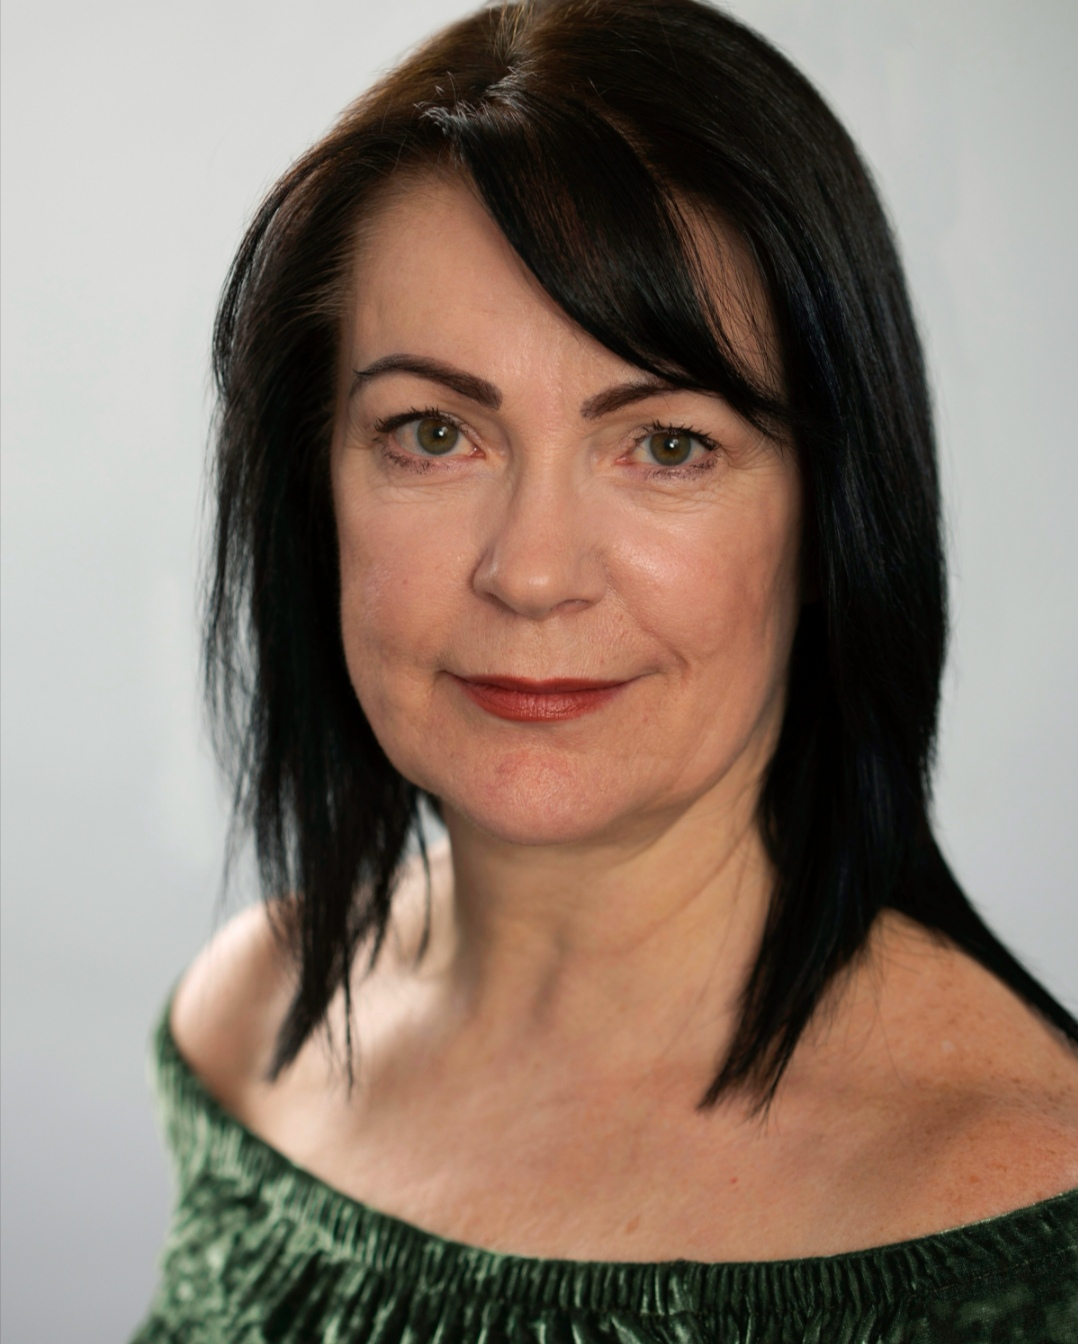 profile image ofGlynis Wozniak.